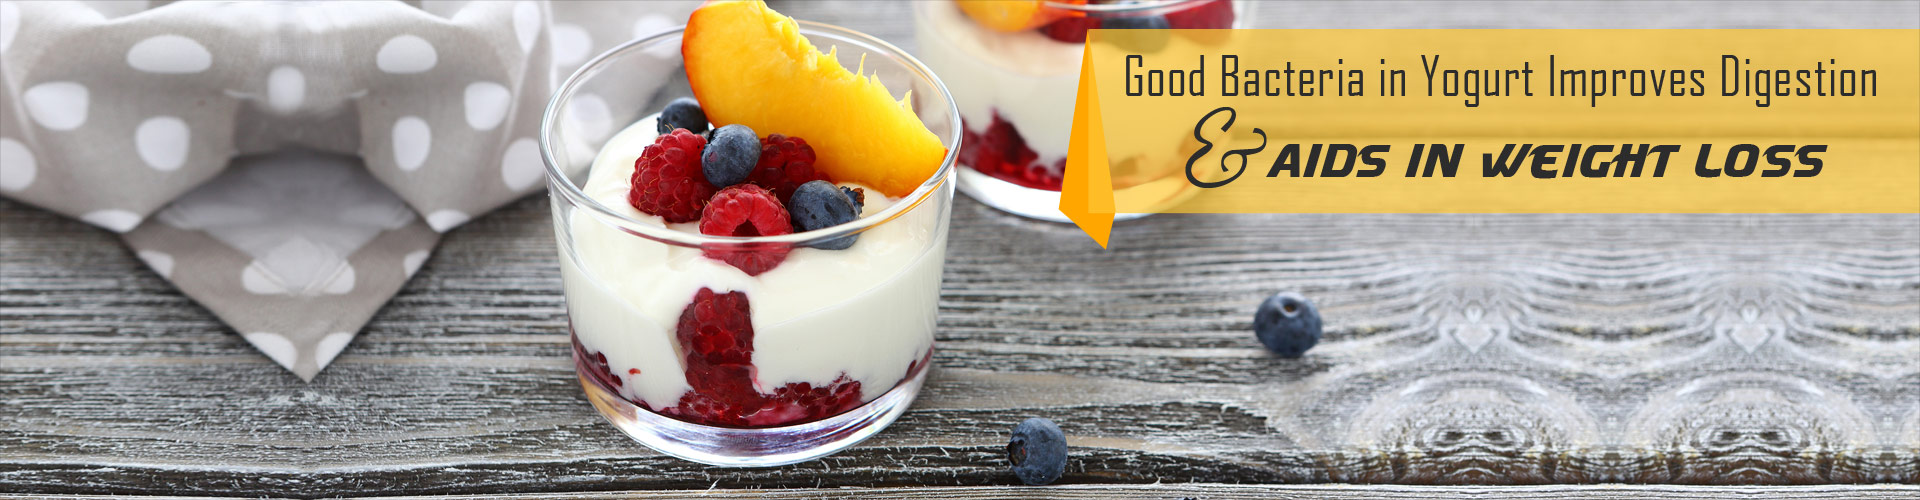 Health Benefits of Probiotic Yogurt Diet